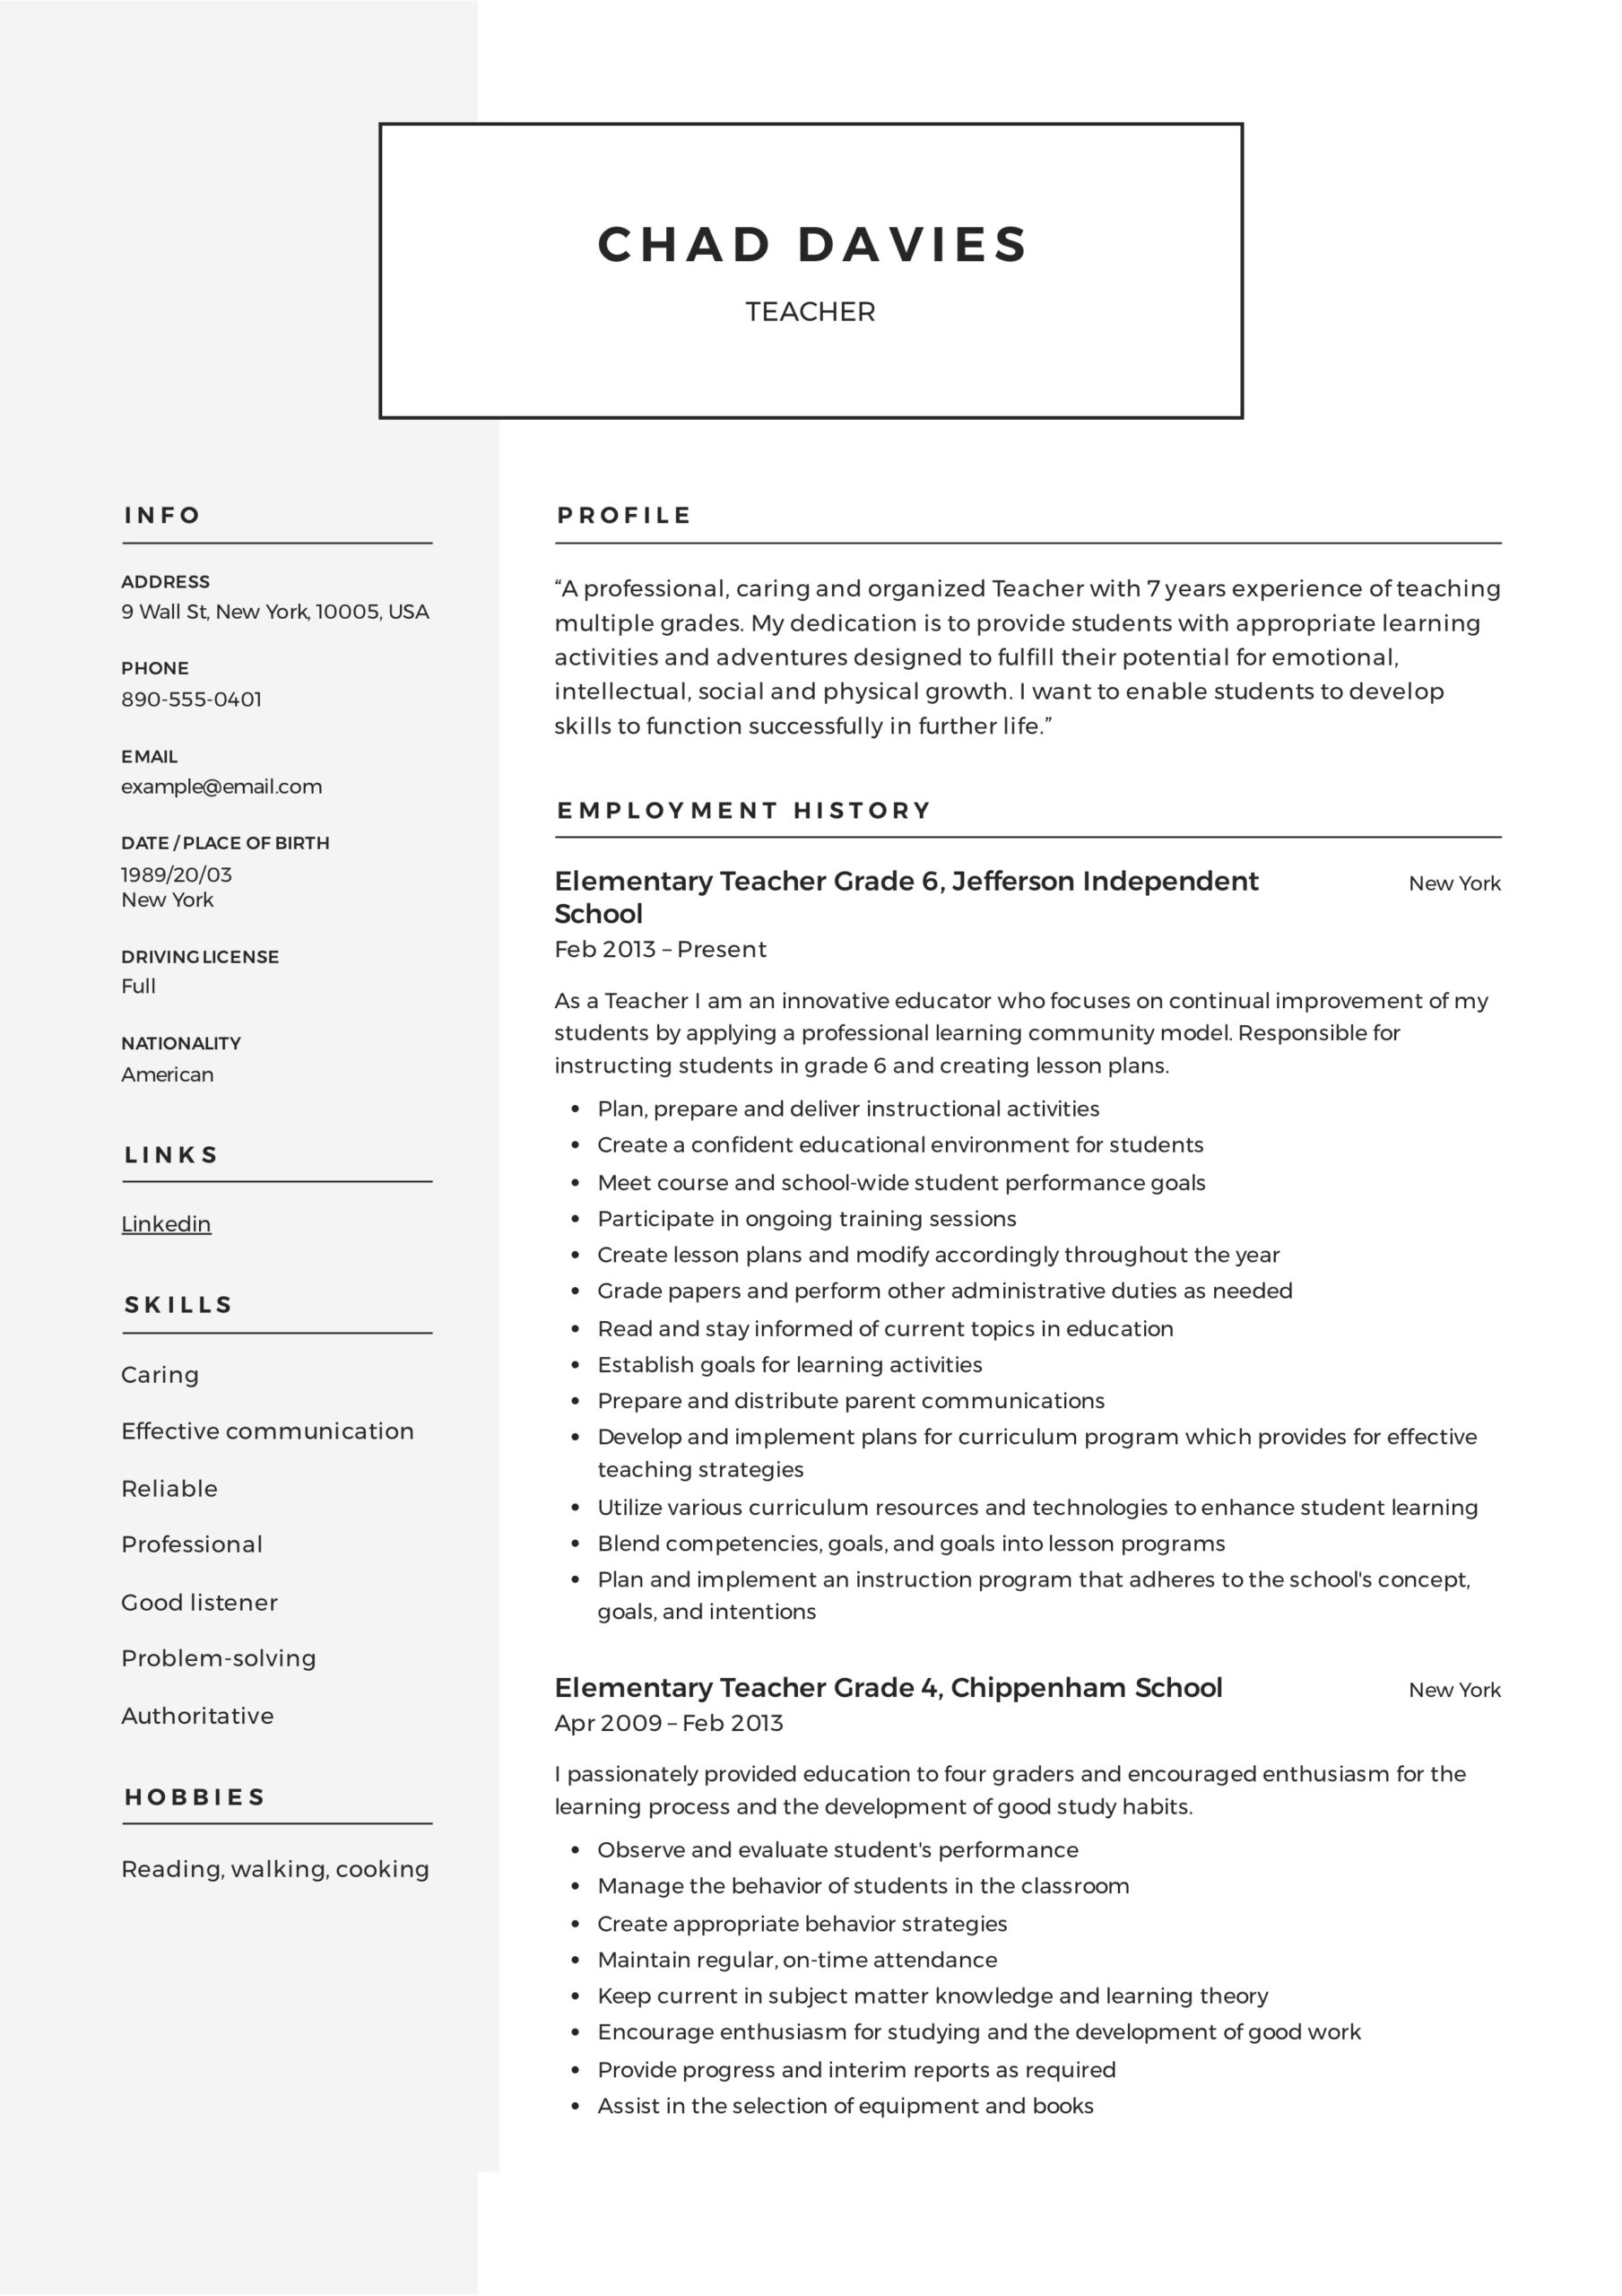 teacher resume writing guide examples pdf elementary school template sample headshot sdet Resume Elementary School Teacher Resume Template